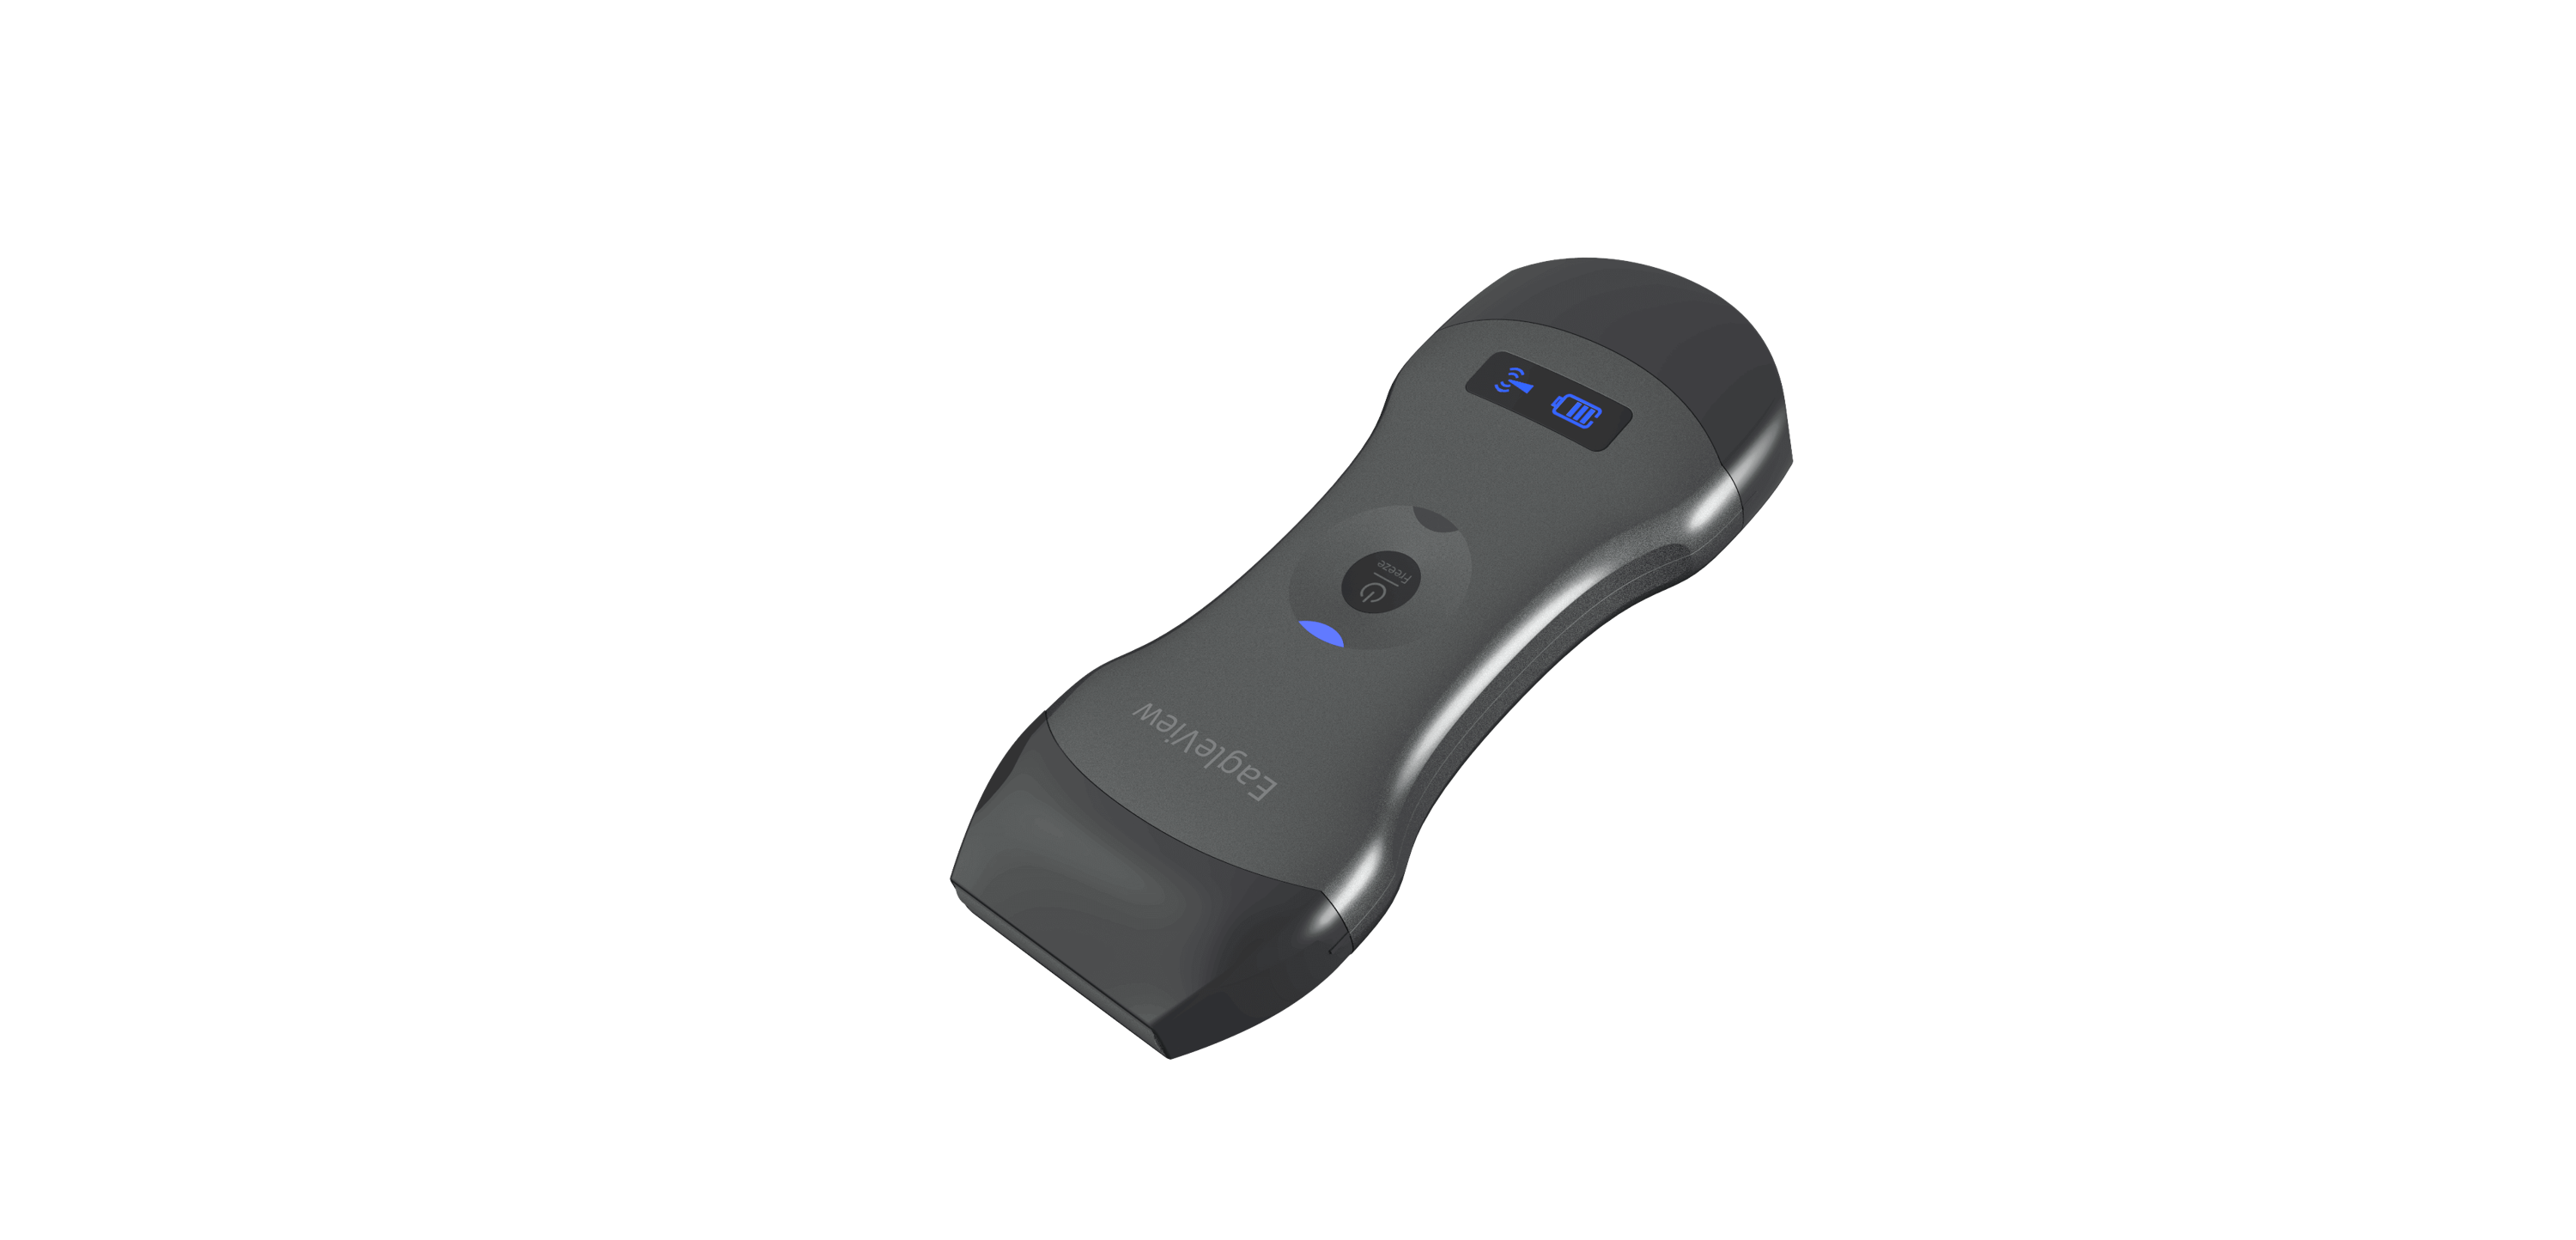 Eagleview dual-head wireless handheld ultrasound scanner.